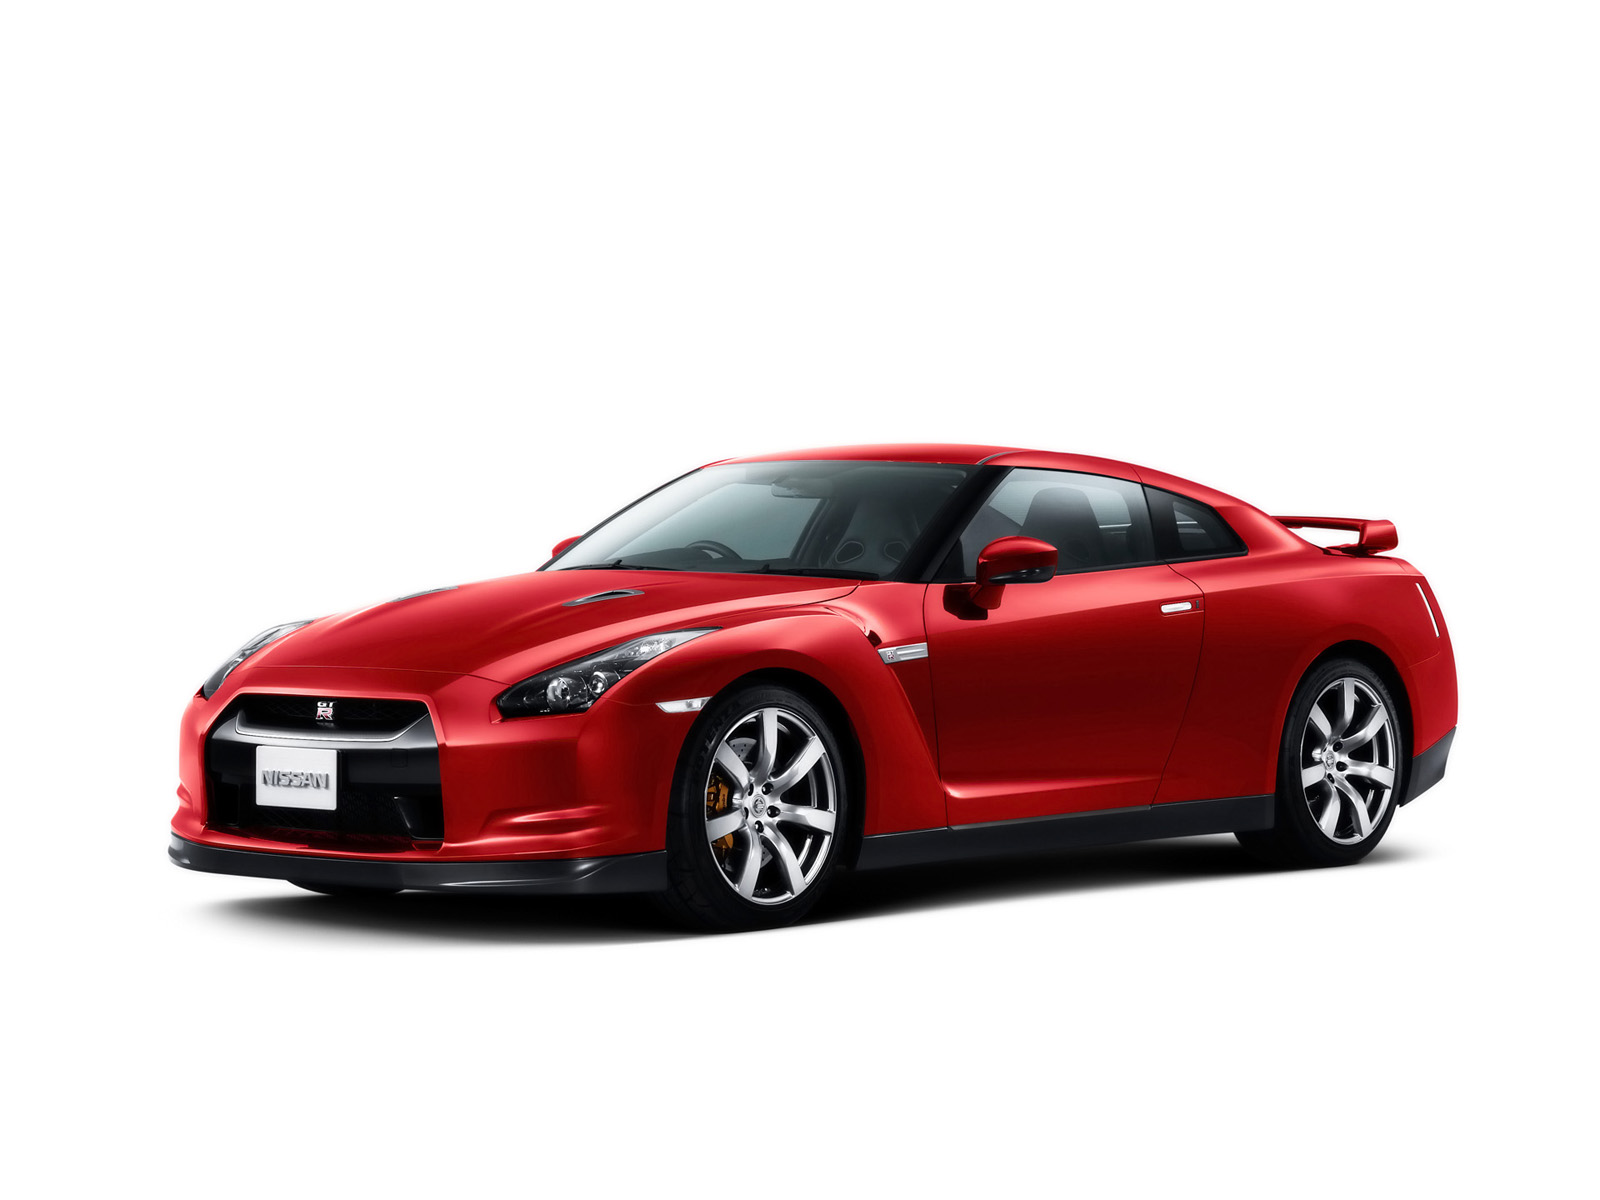 GT R   Nissan   Cars   HiRes Desktop Wallpapers   Page 1 1600x1200